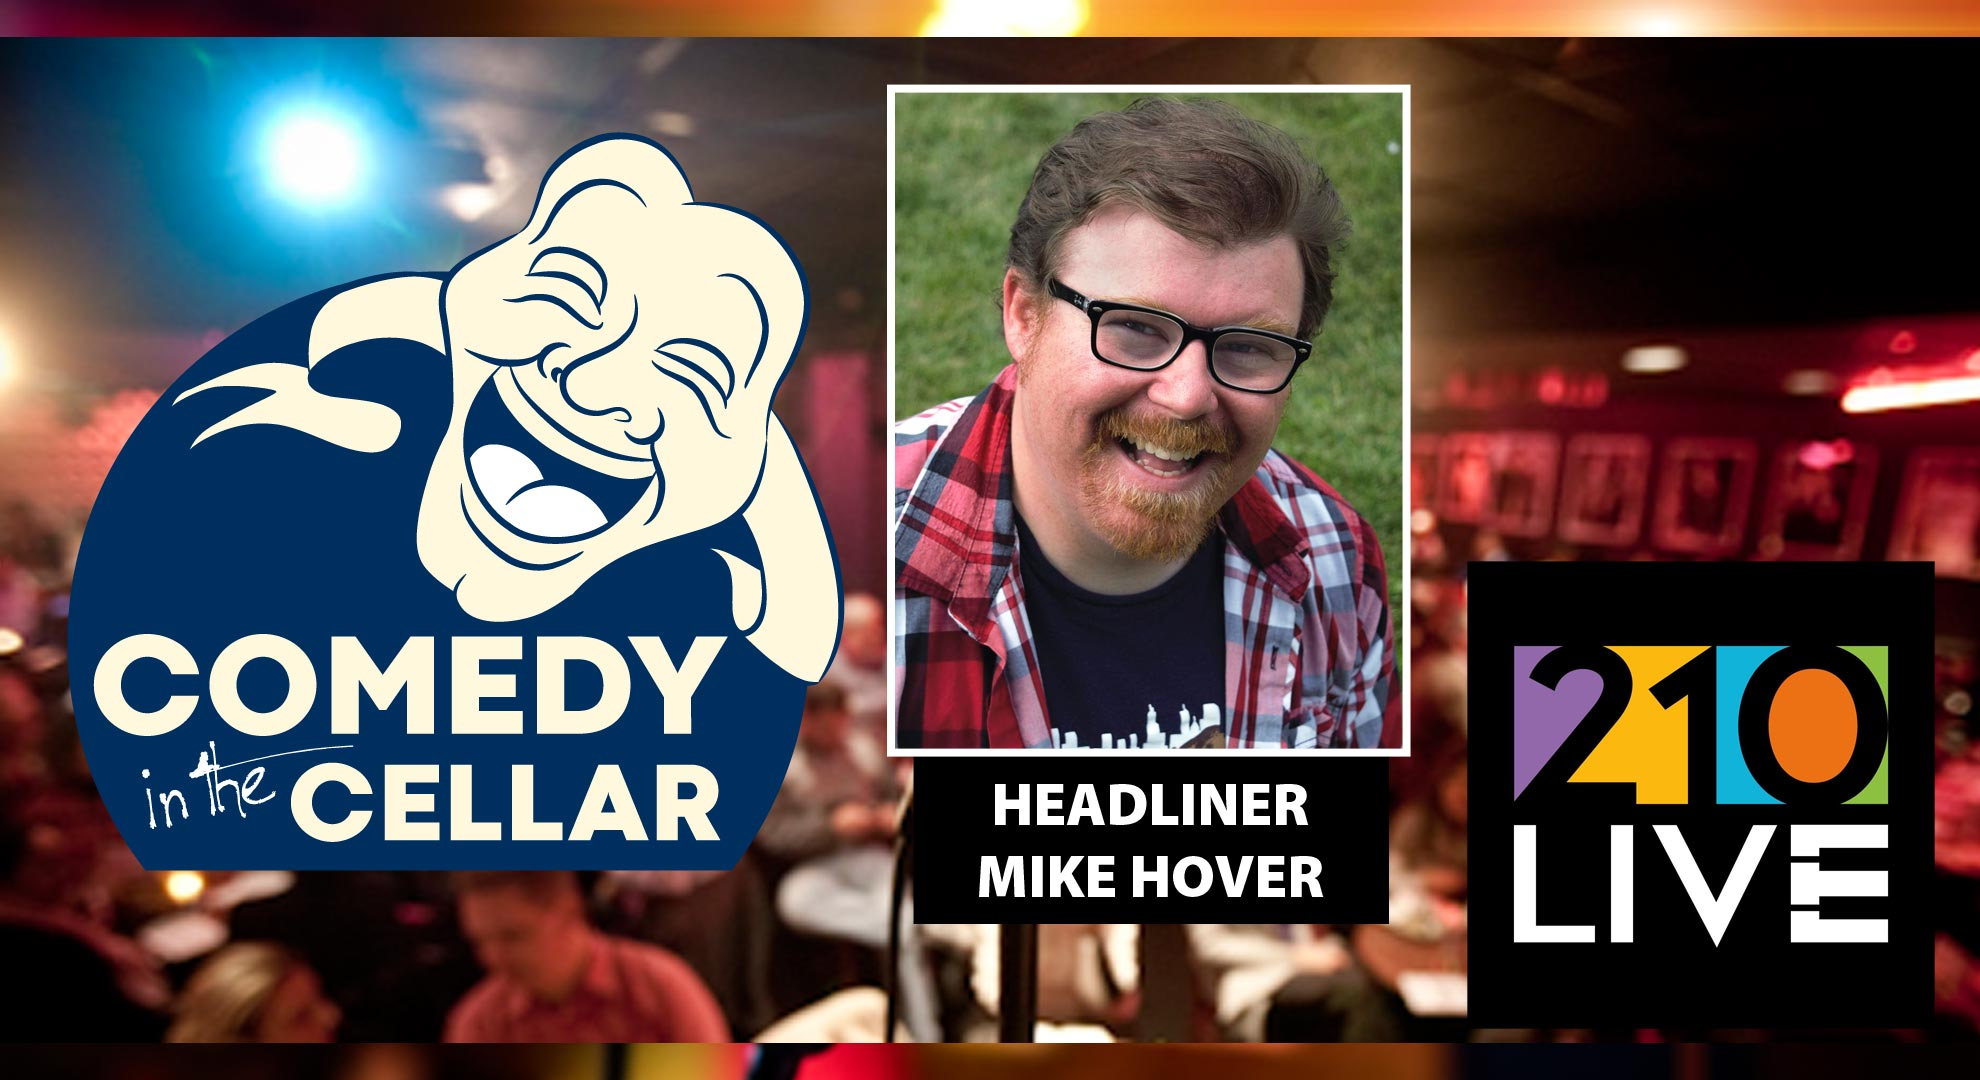 Comedy in the Cellar w/headliner Mike Hover